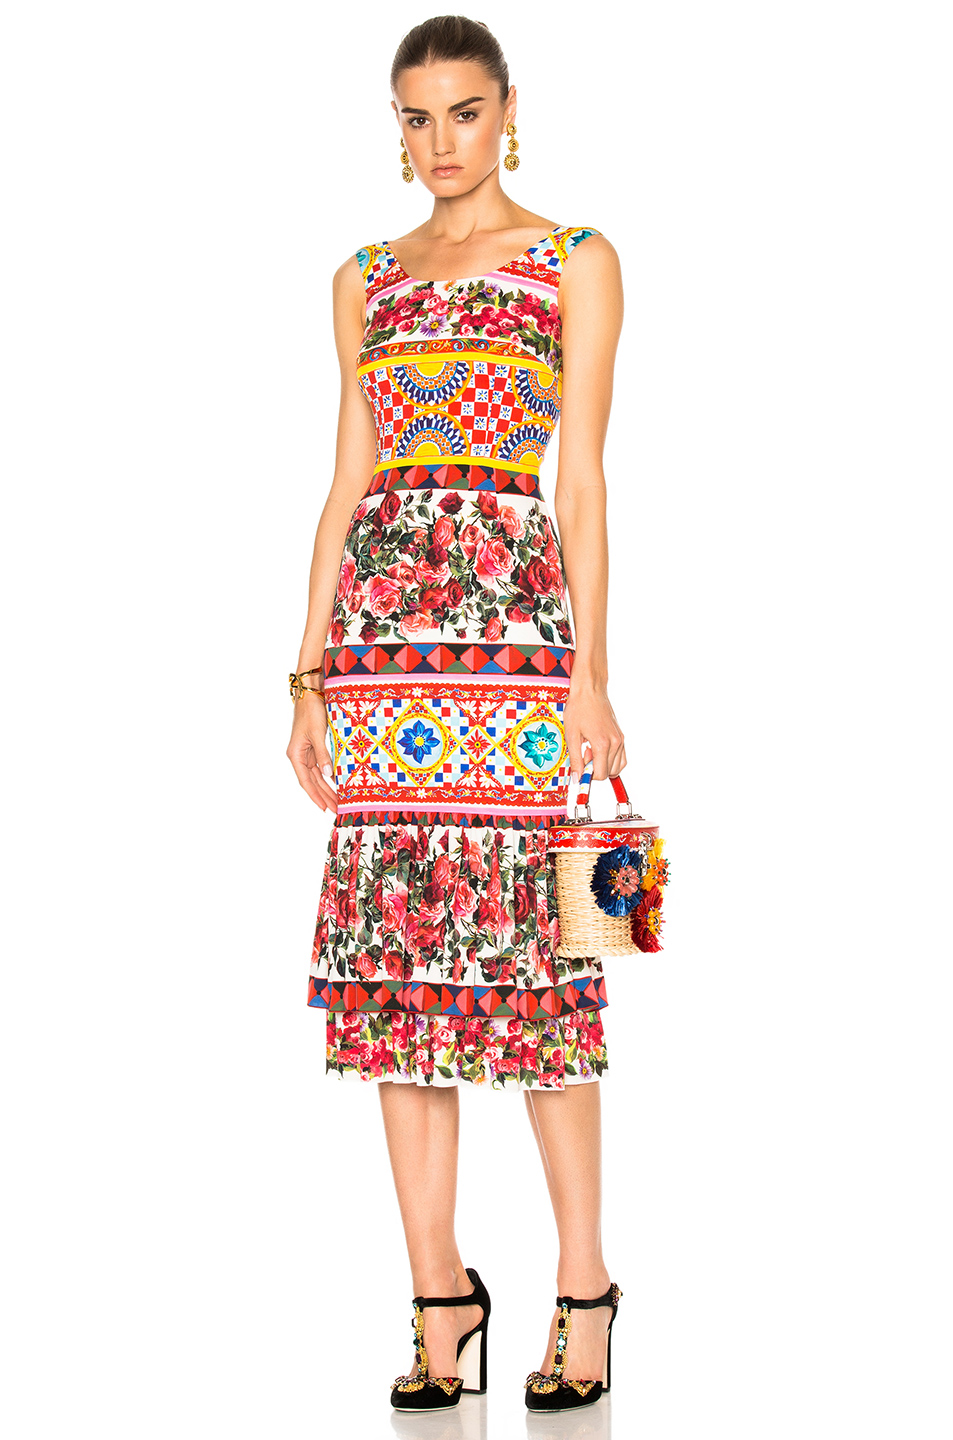 Dolce & Gabbana Charmeuse Printed Dress in Abstract,Floral,Pink,Red